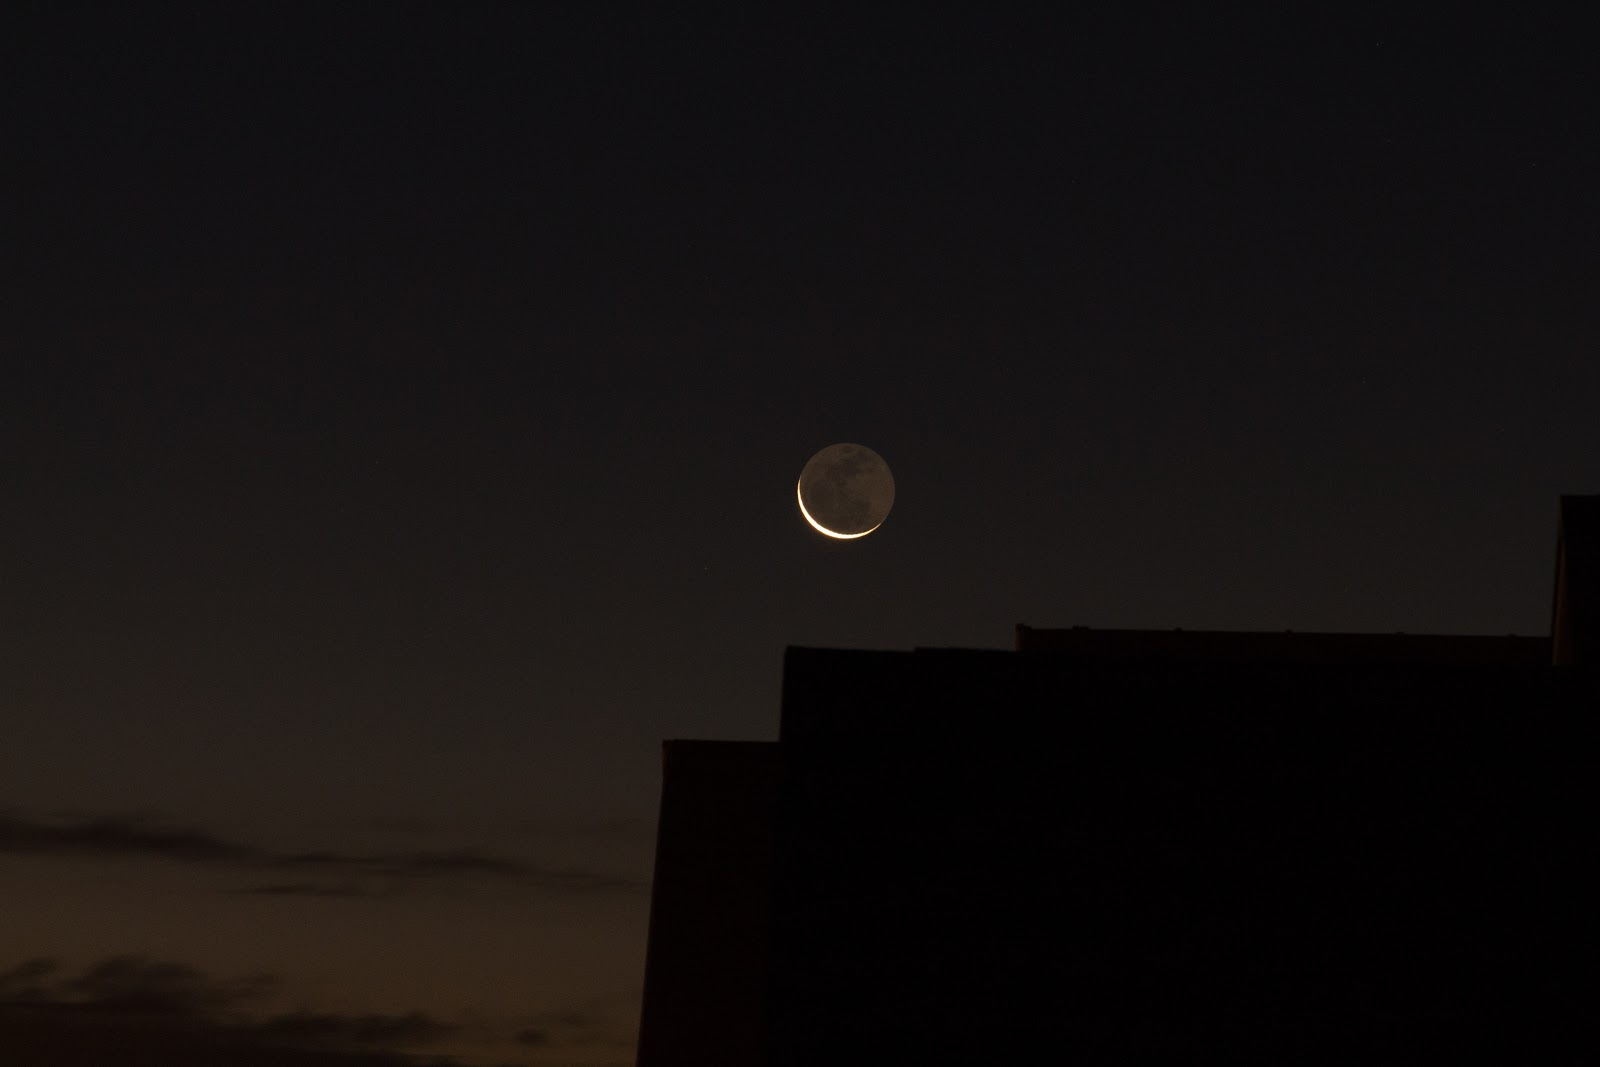 earthshine moon over roof